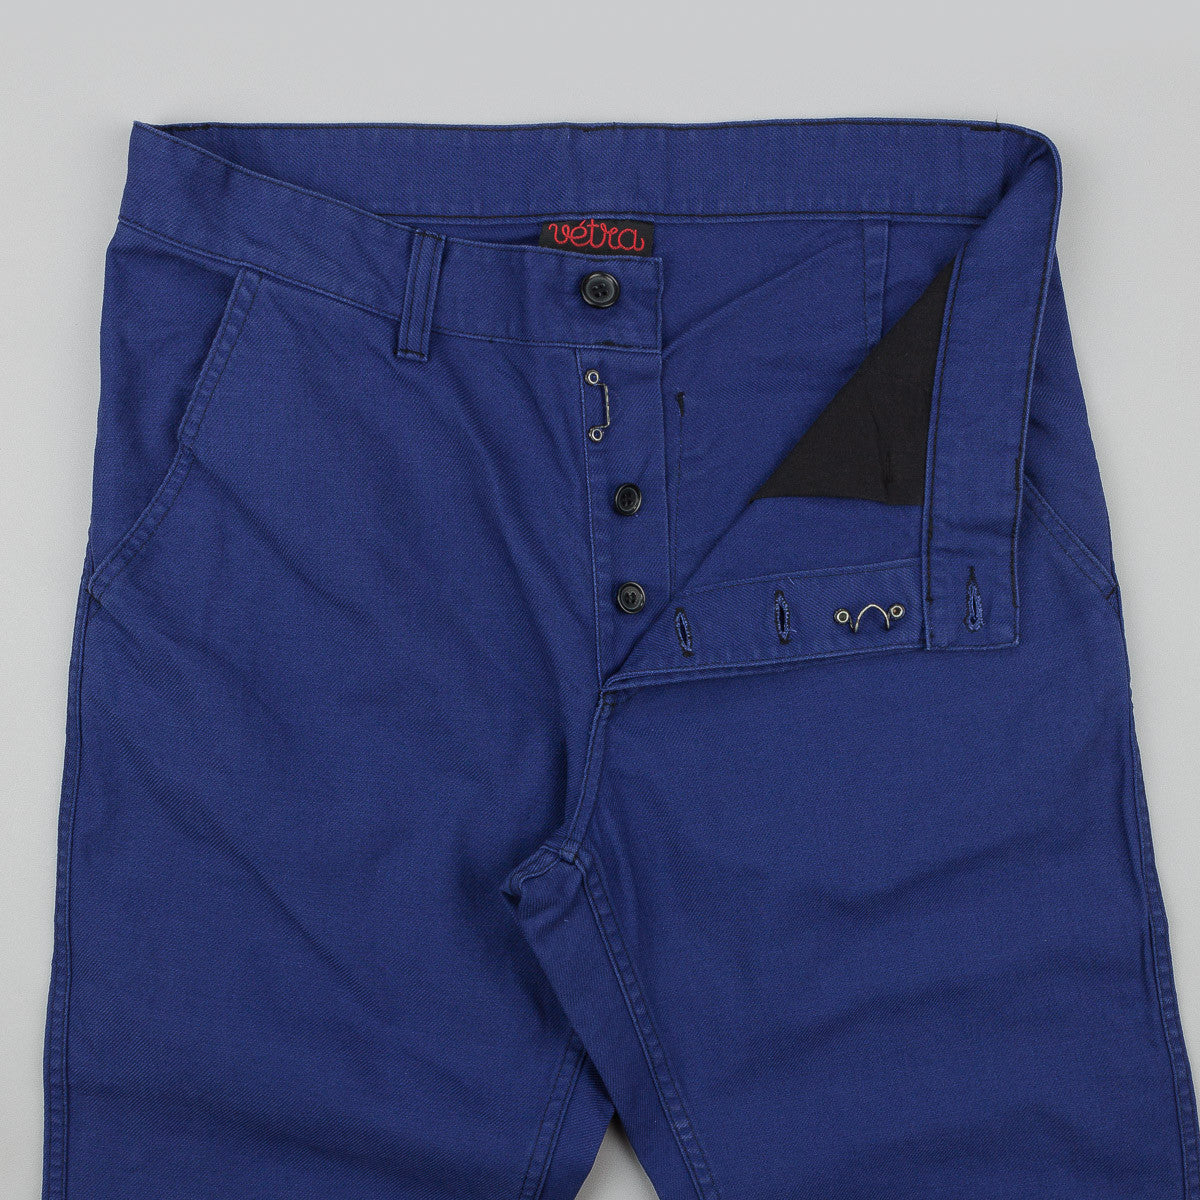 Vetra No.264 Workwear Trousers - Hydrone Blue